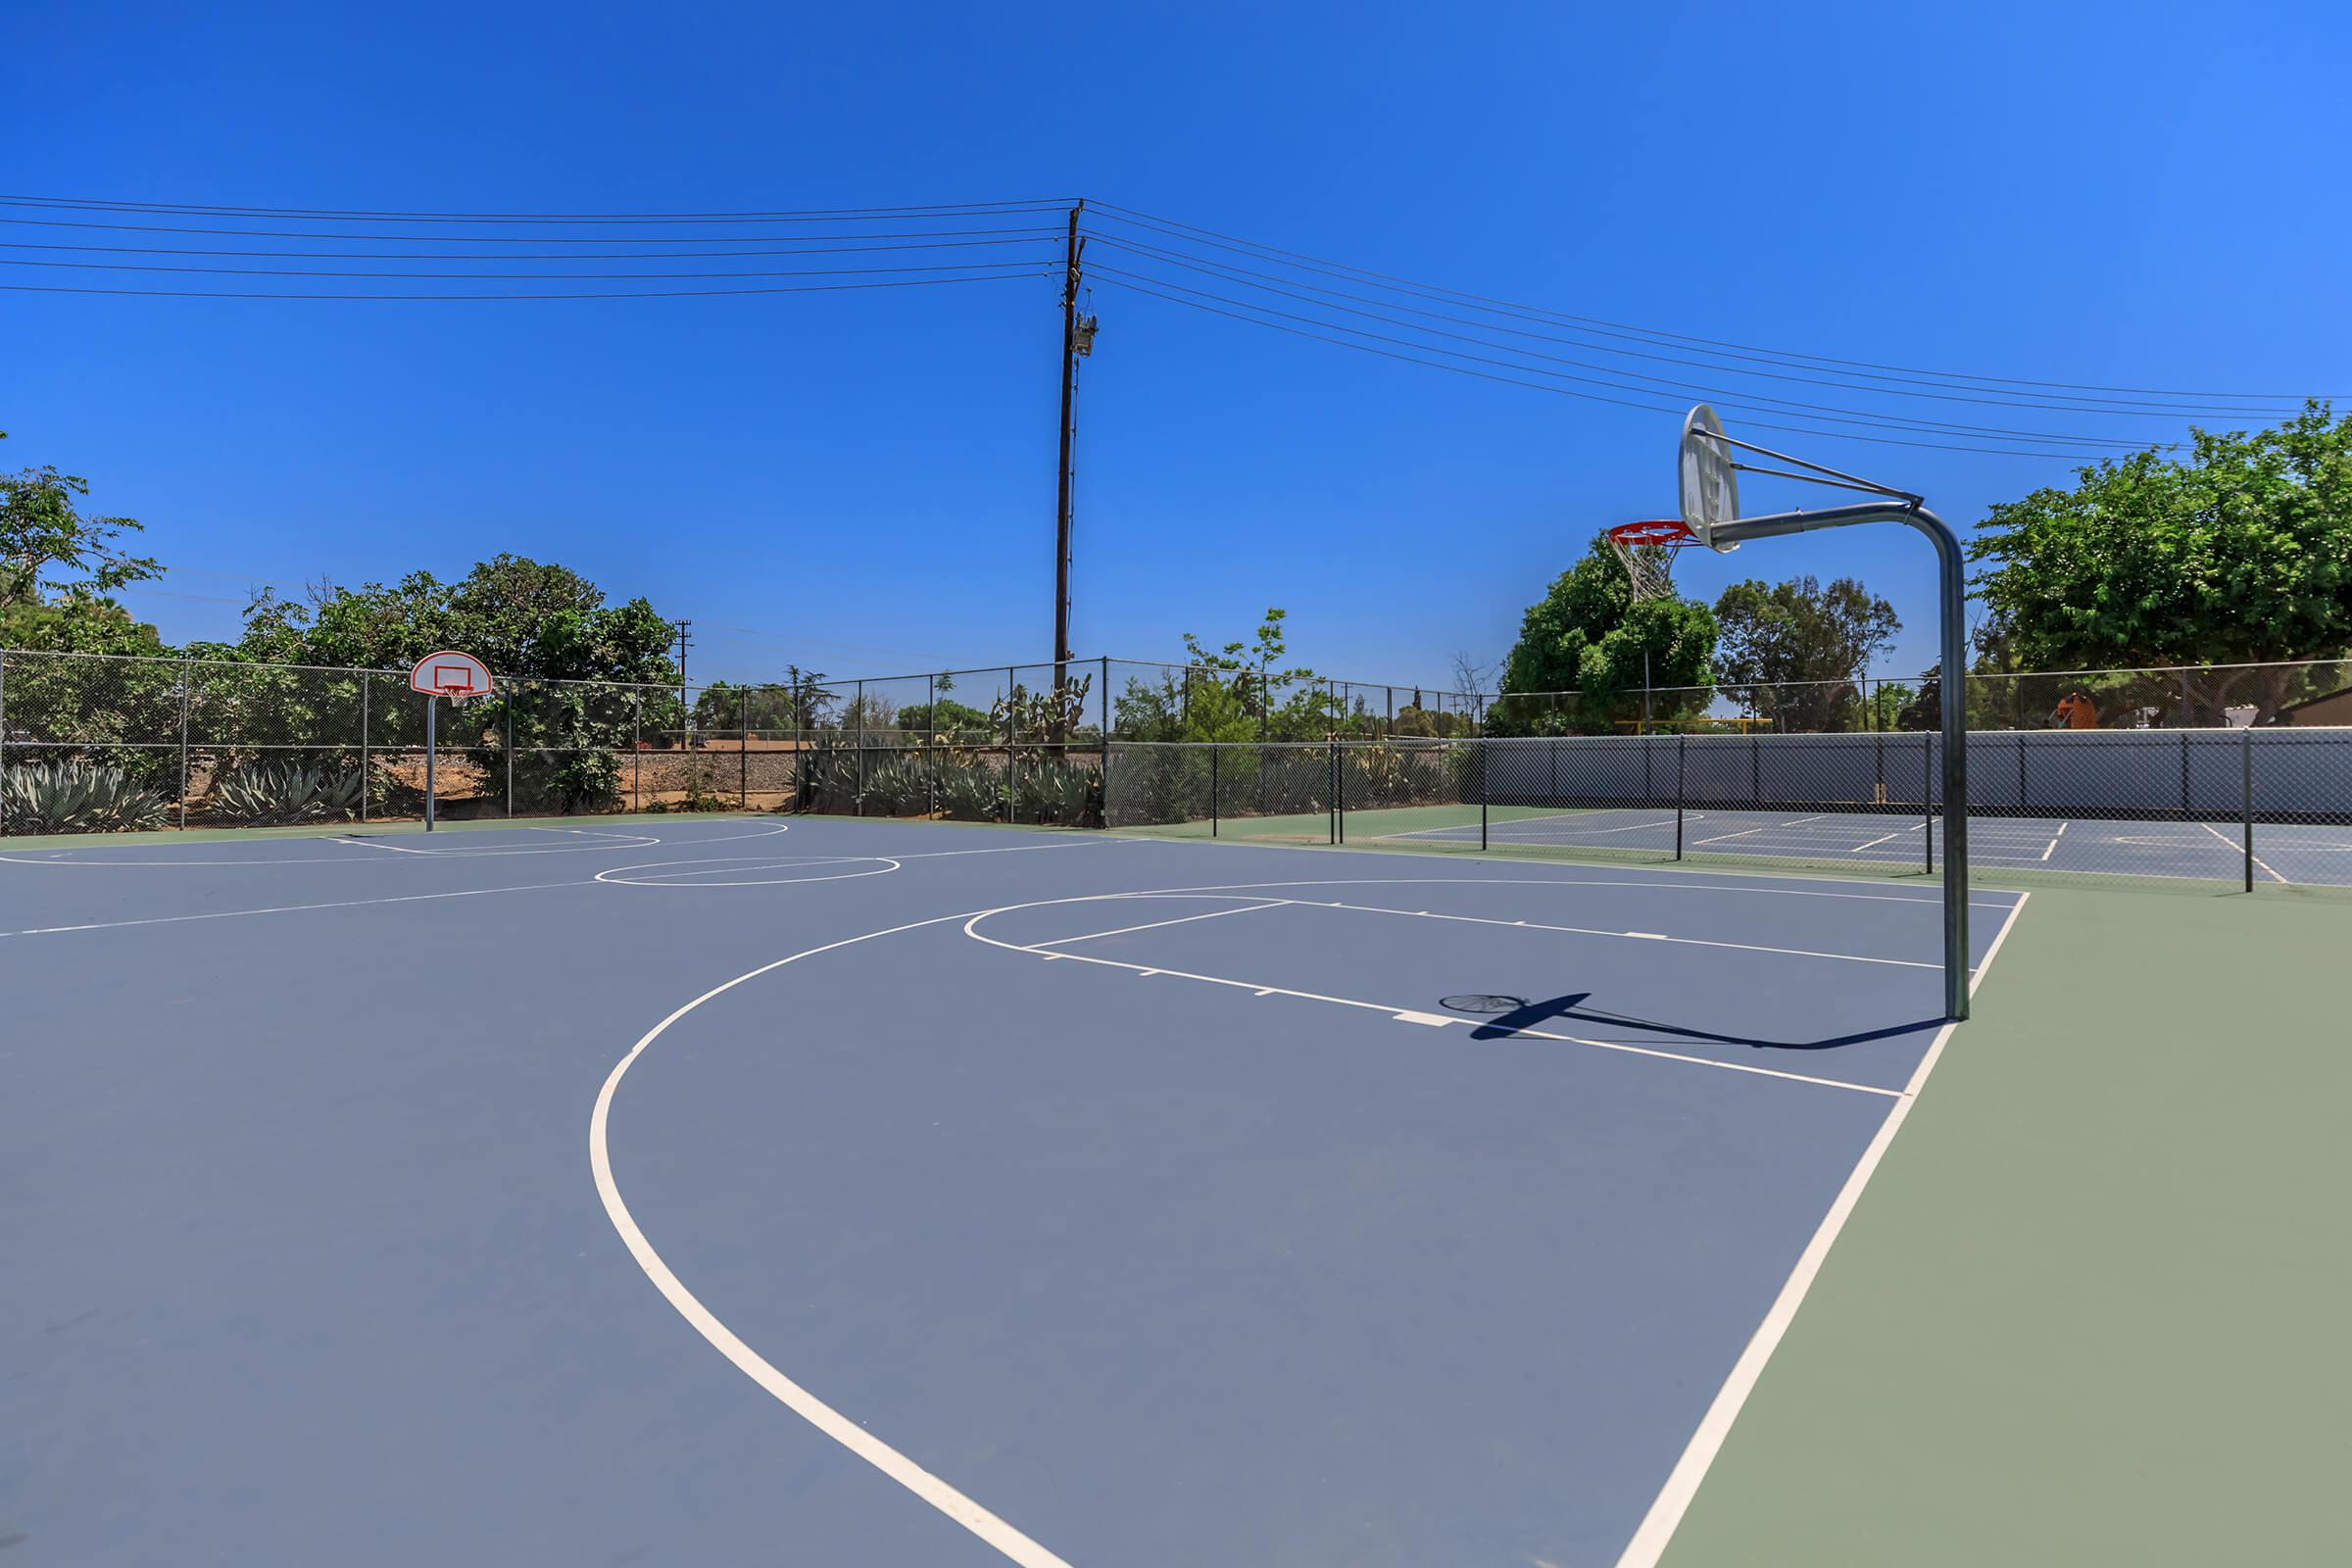 The Parks at Fig Garden basketball court